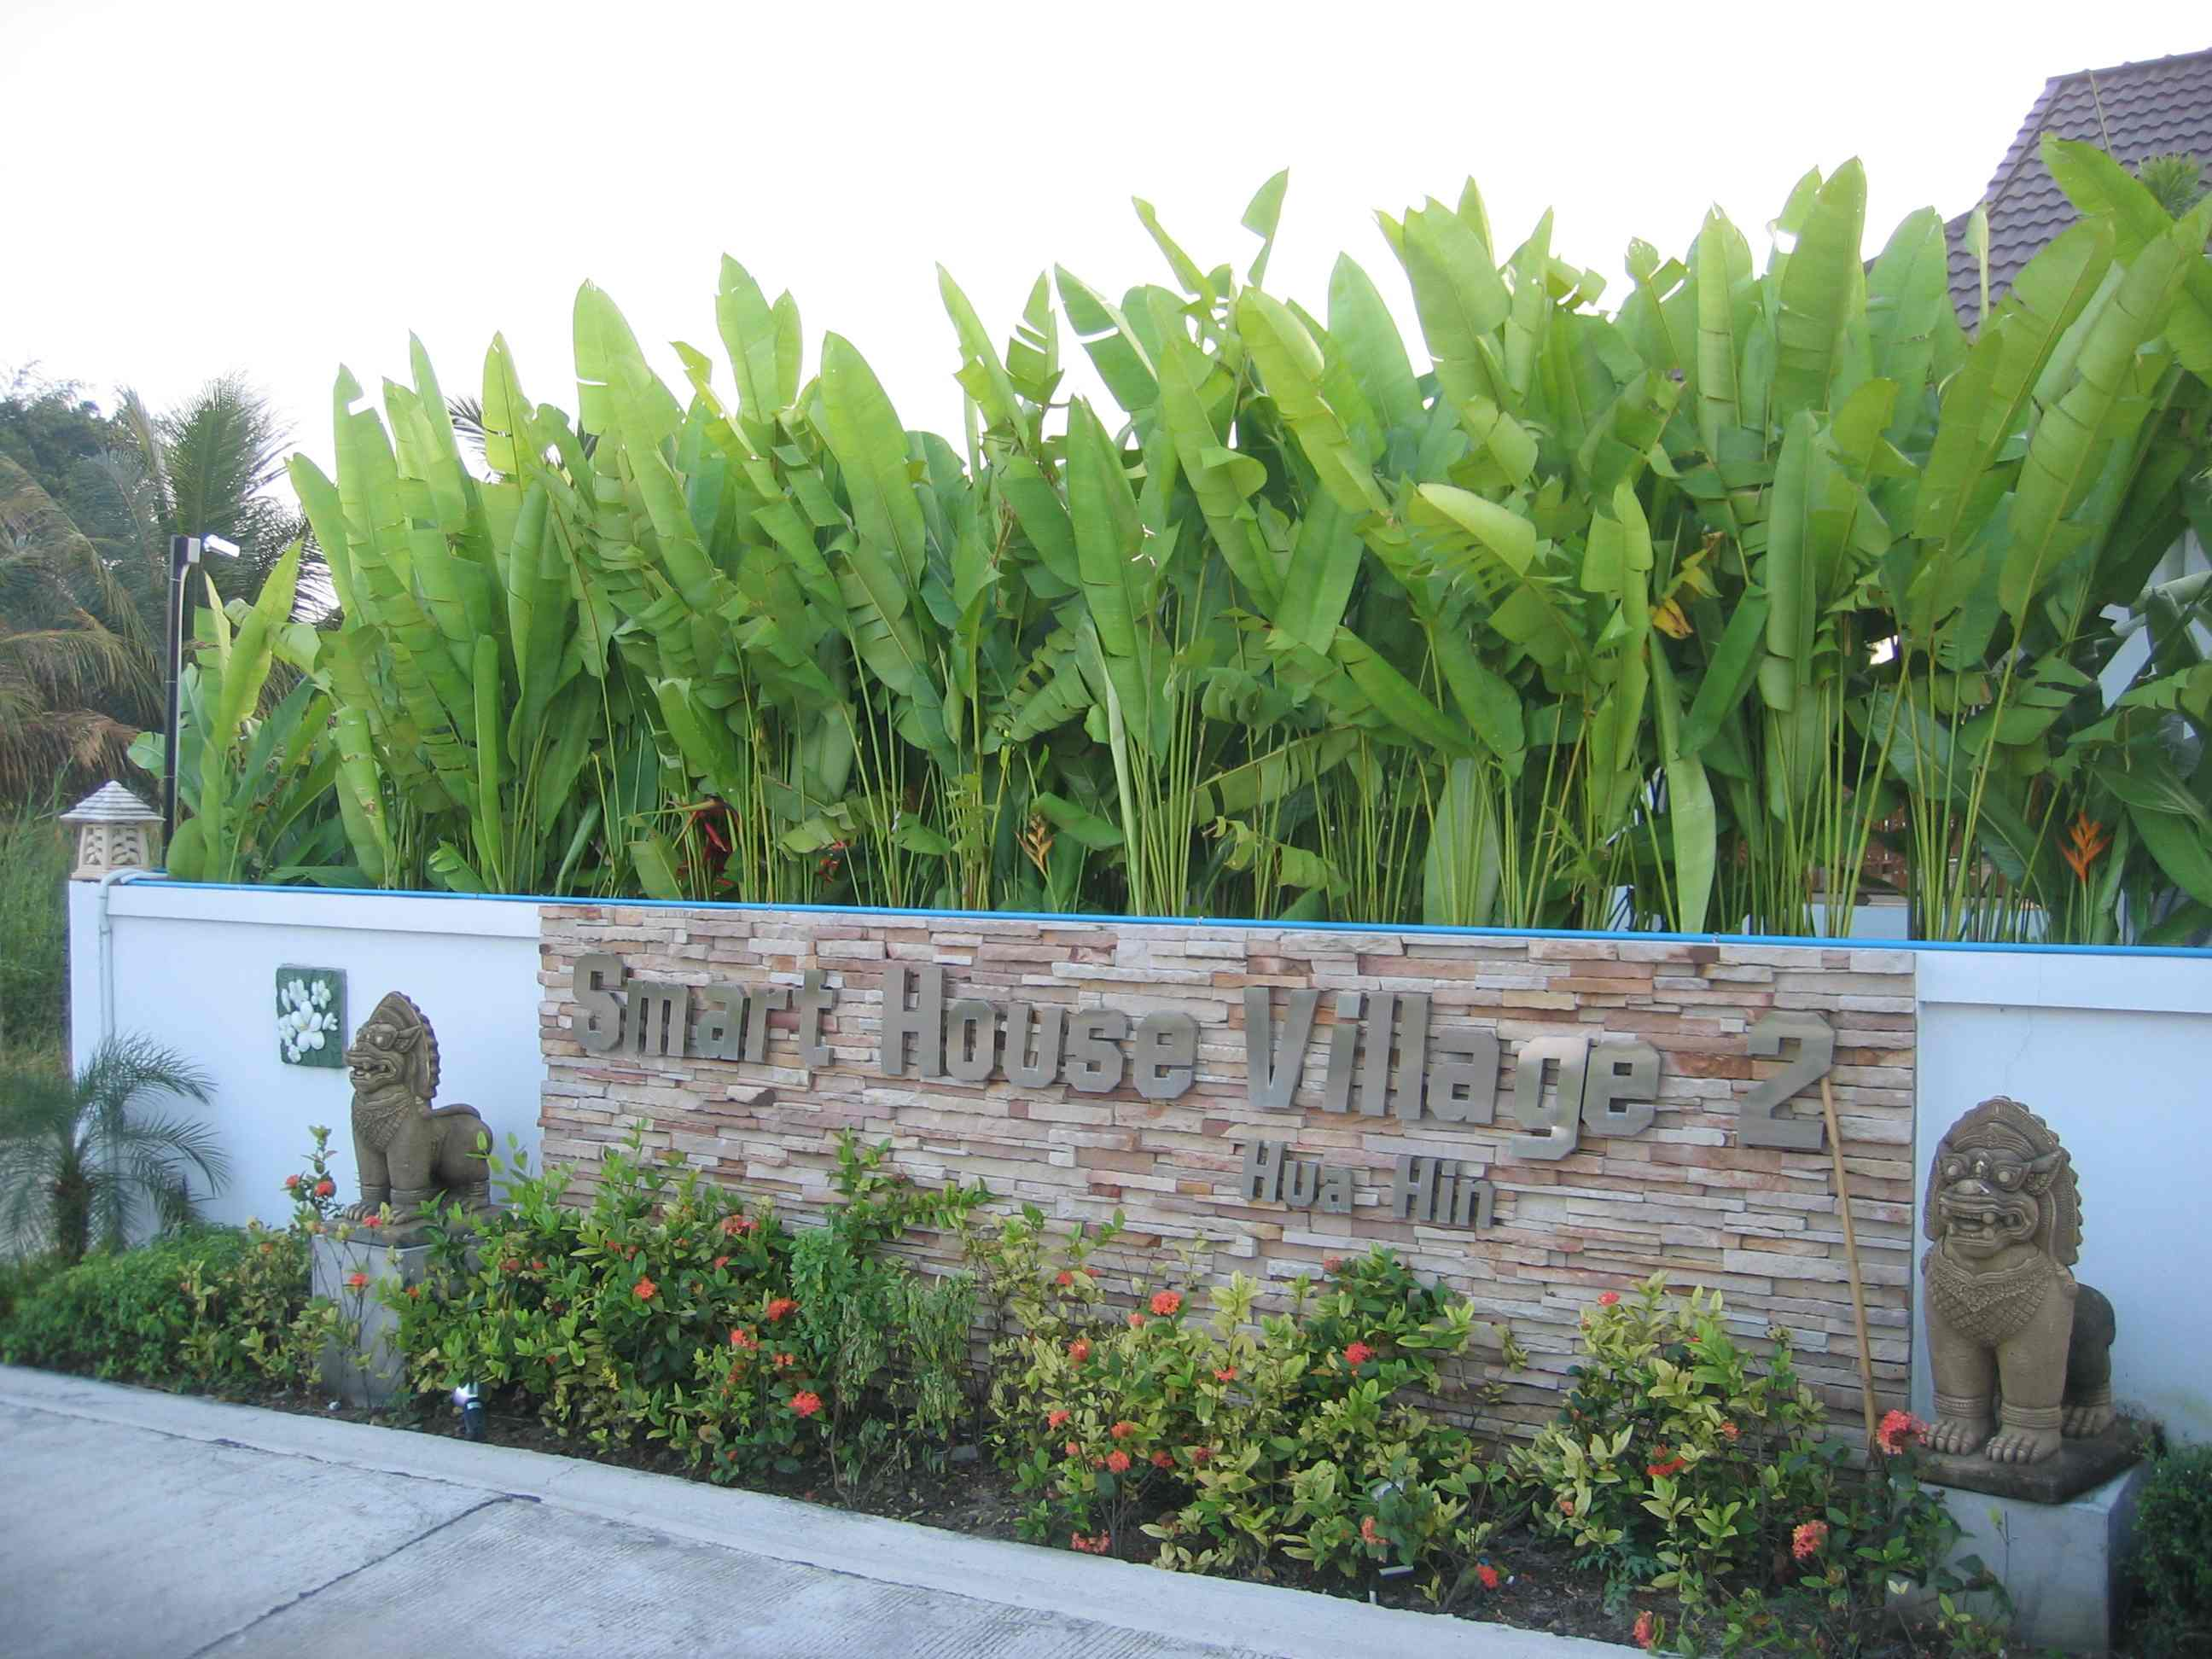 Smart House Village 2 entrance